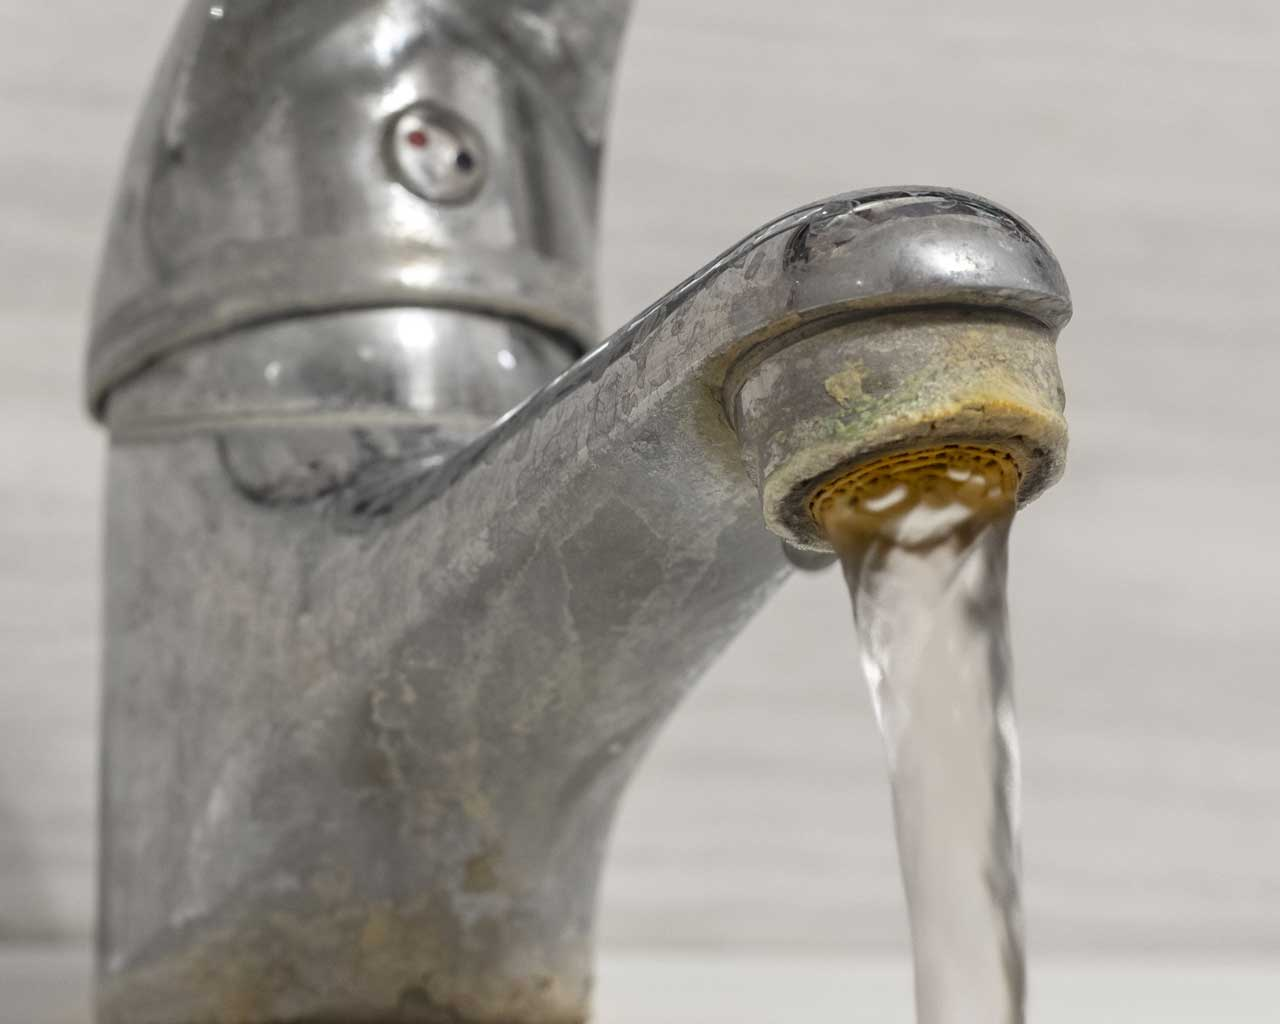 Hanover Supply, problems caused by hard water